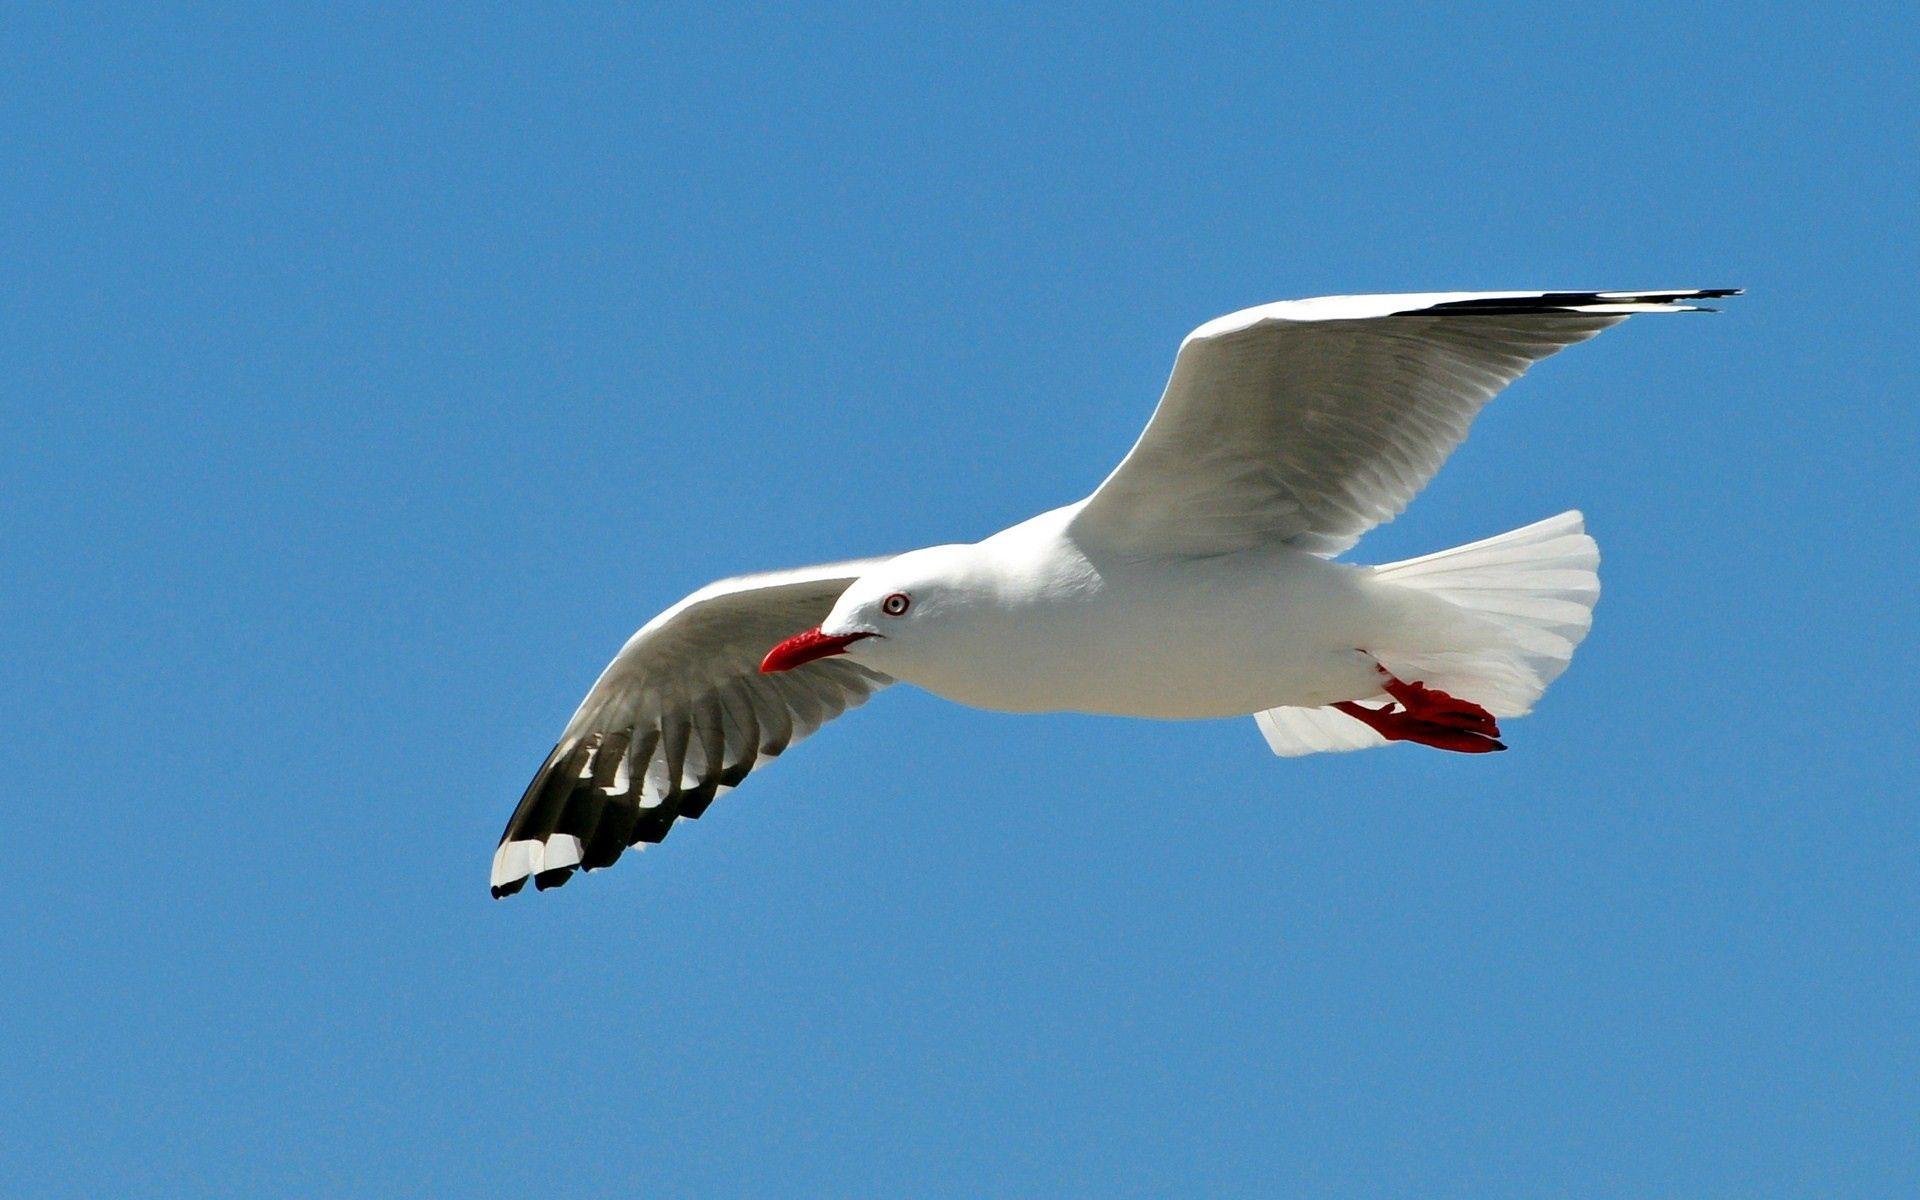 138999 download wallpaper Animals, Gull, Seagull, Bird, Sky, Sweep, Wave, Flight screensavers and pictures for free